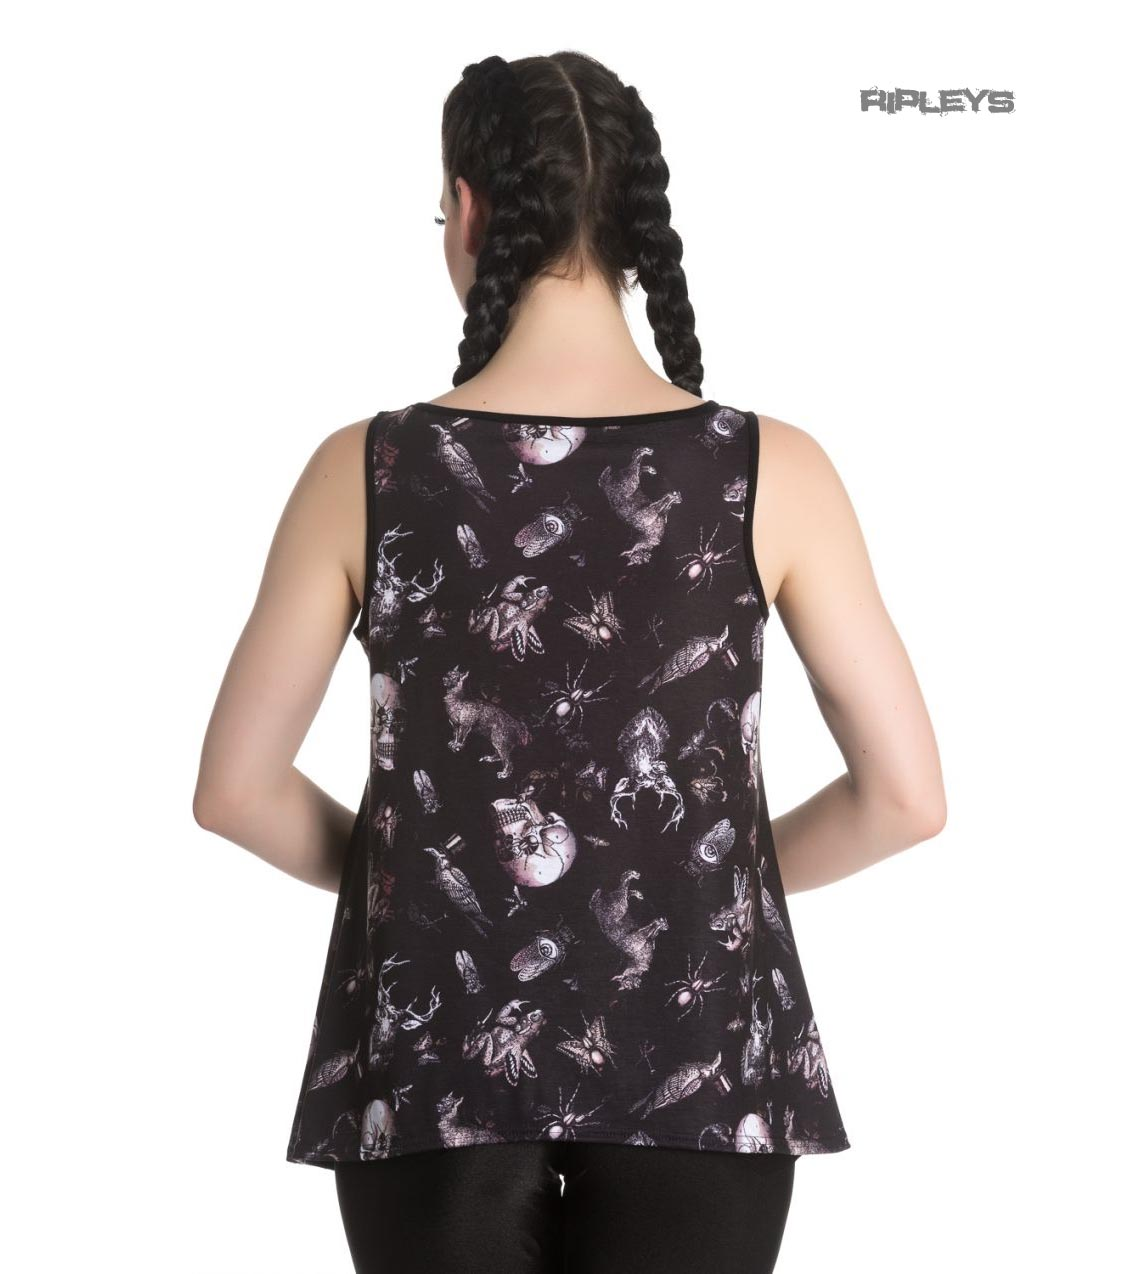 Hell-Bunny-Black-Vest-Cami-Top-Goth-Witch-DARWIN-Taxidermy-Skulls-All-Sizes thumbnail 16